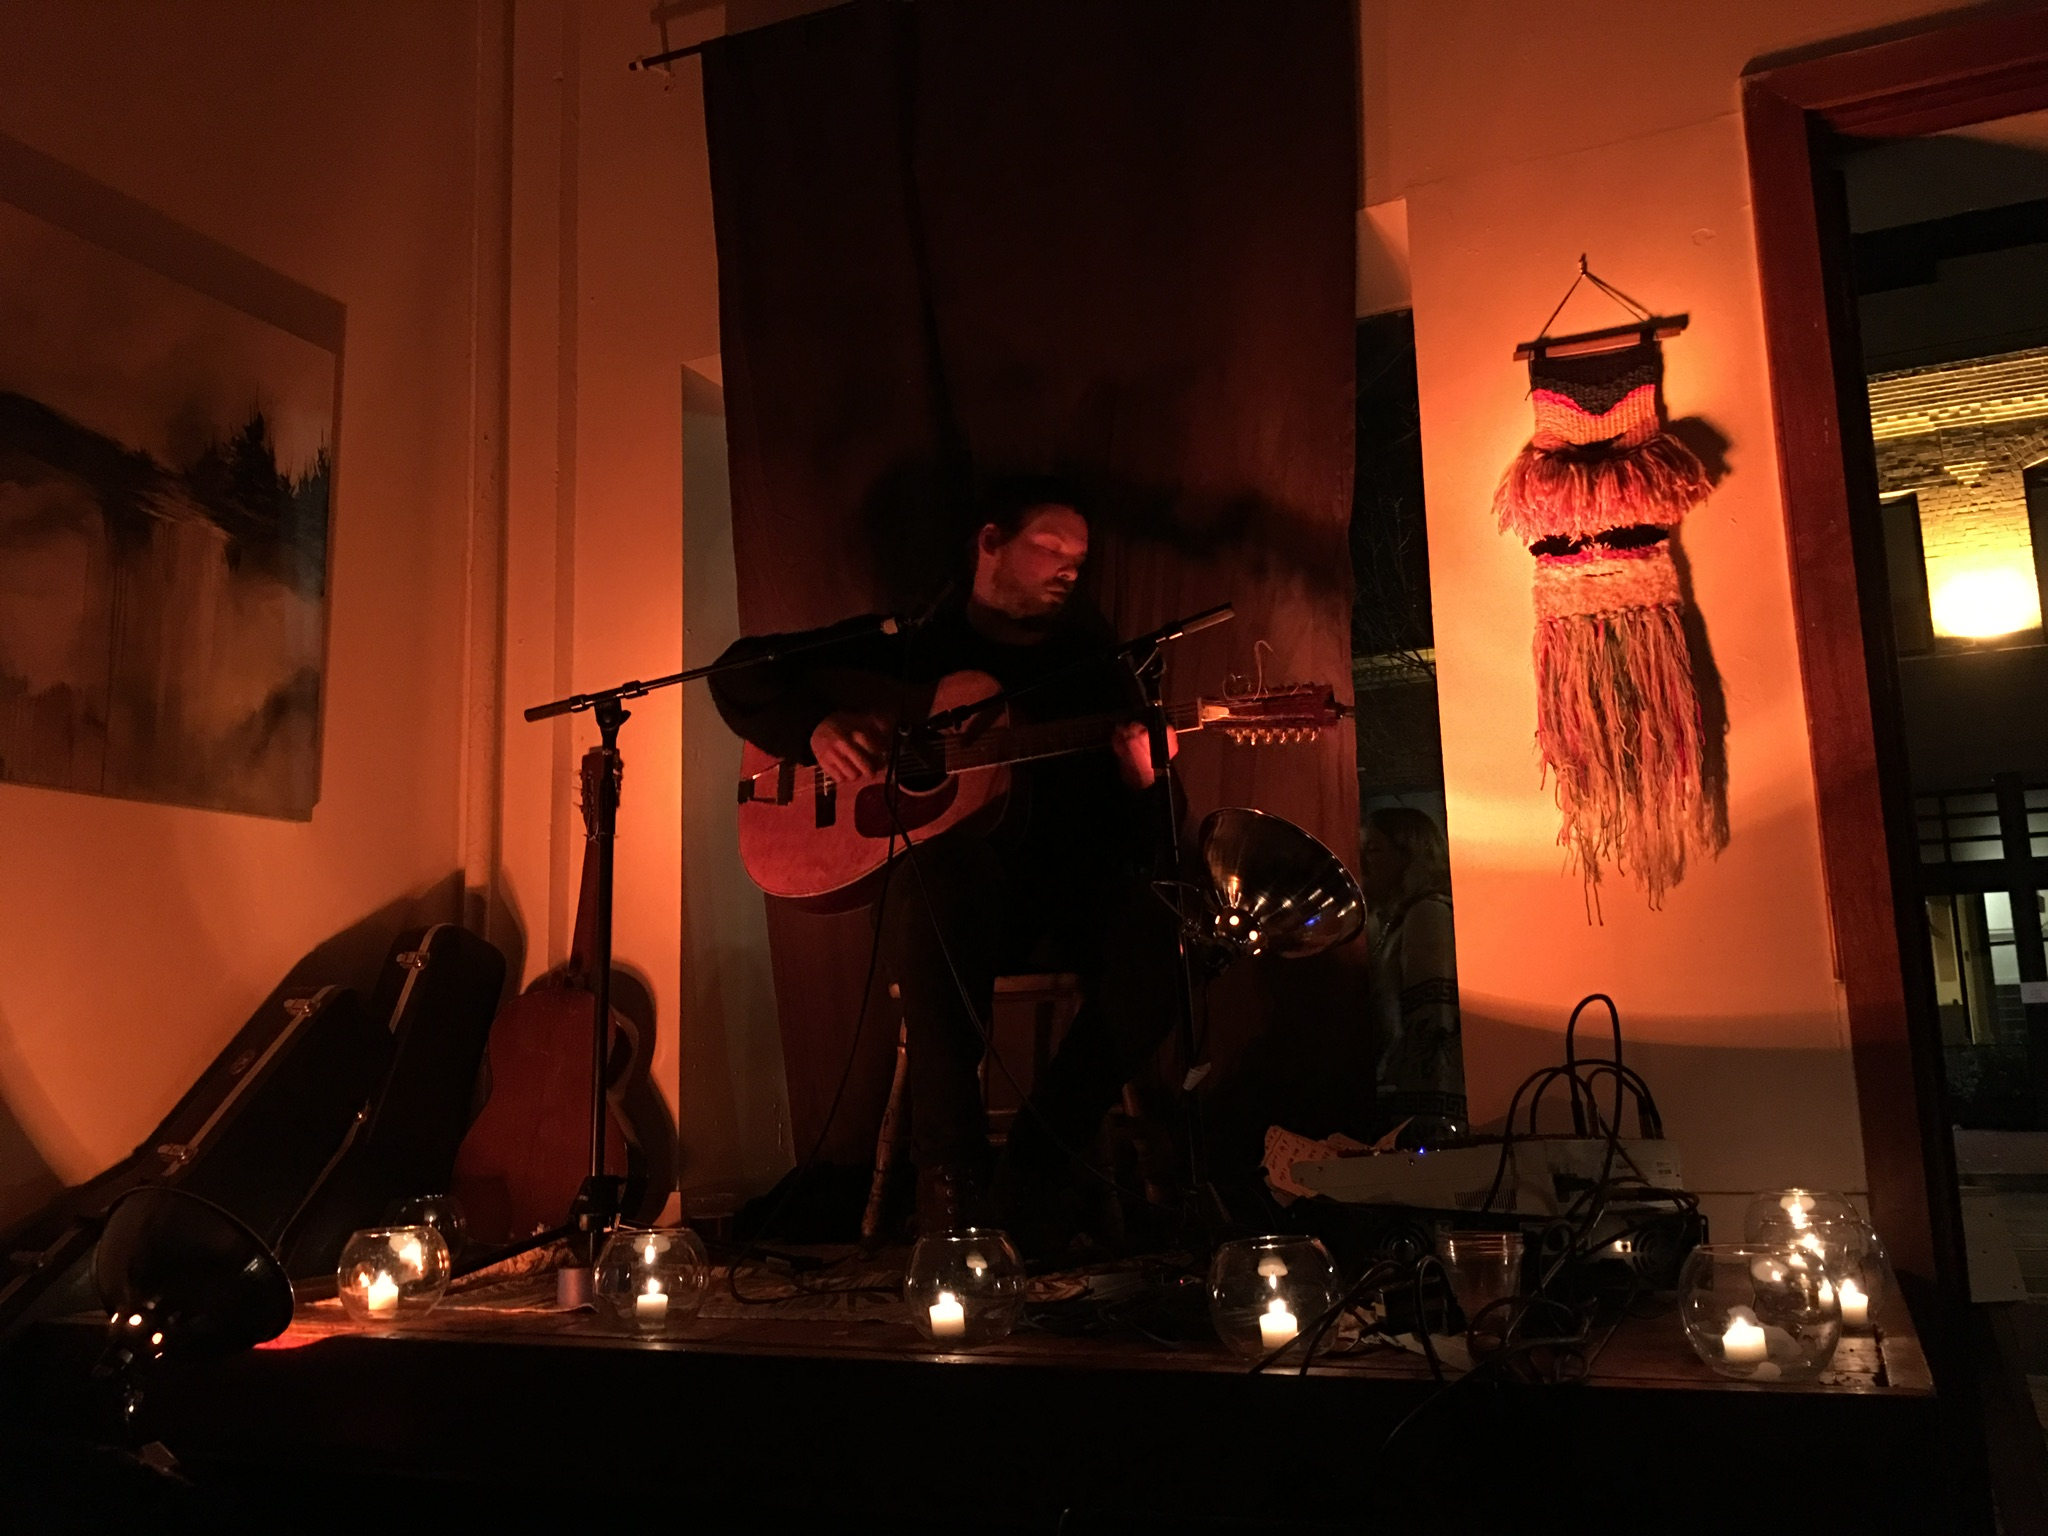 Incredible solo performance by local musician & primitive guitarist BRIAN MICHAEL LEVIN at the opening reception.  This is a rare treat, and an honor to have been able to share this experience with so many people!